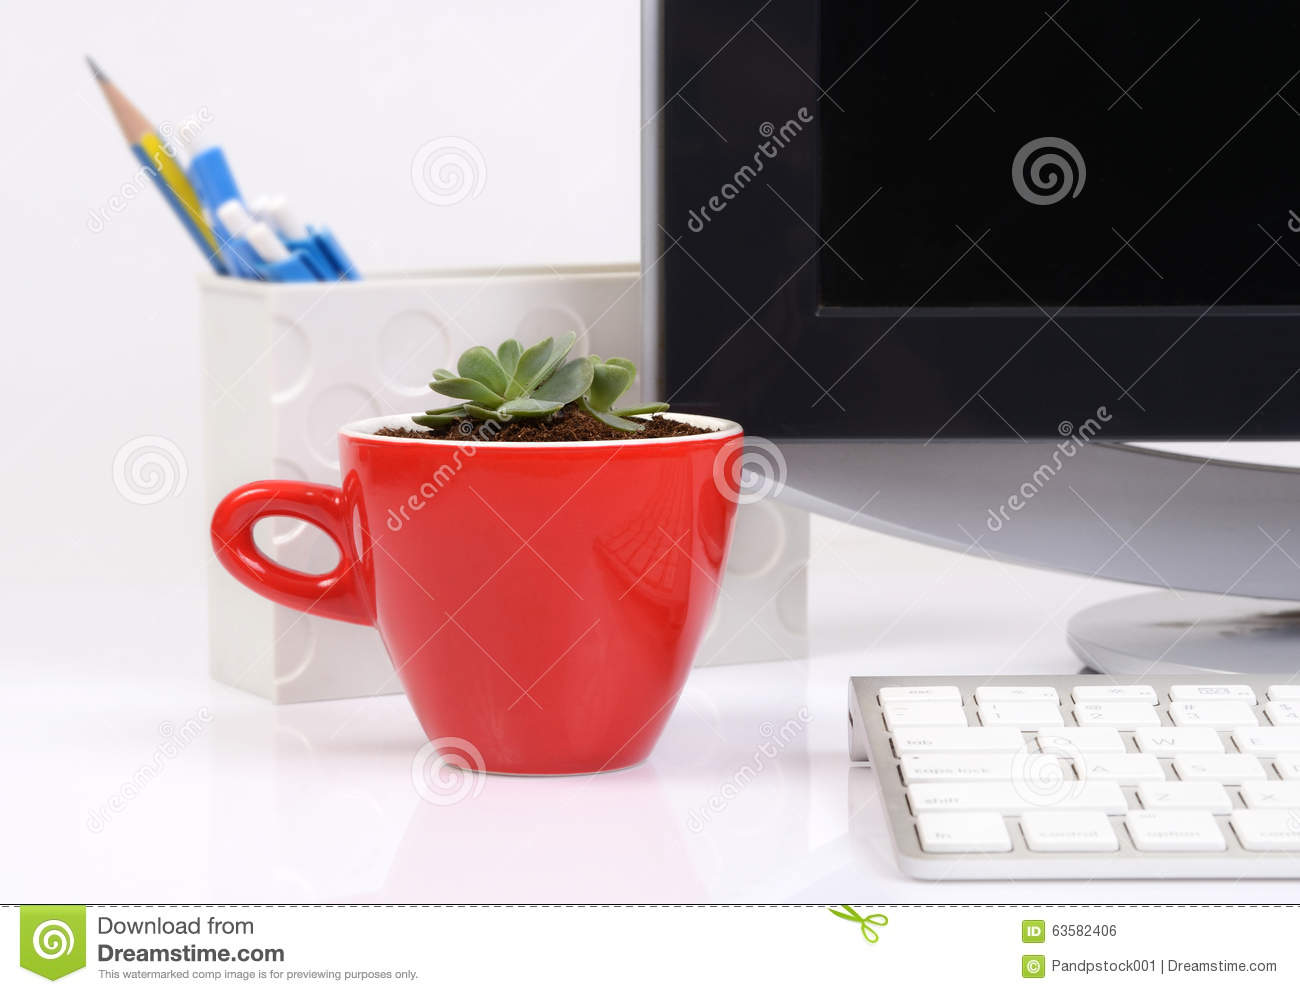 Small Cactus In Red Ceramic Cup On Office Desk.